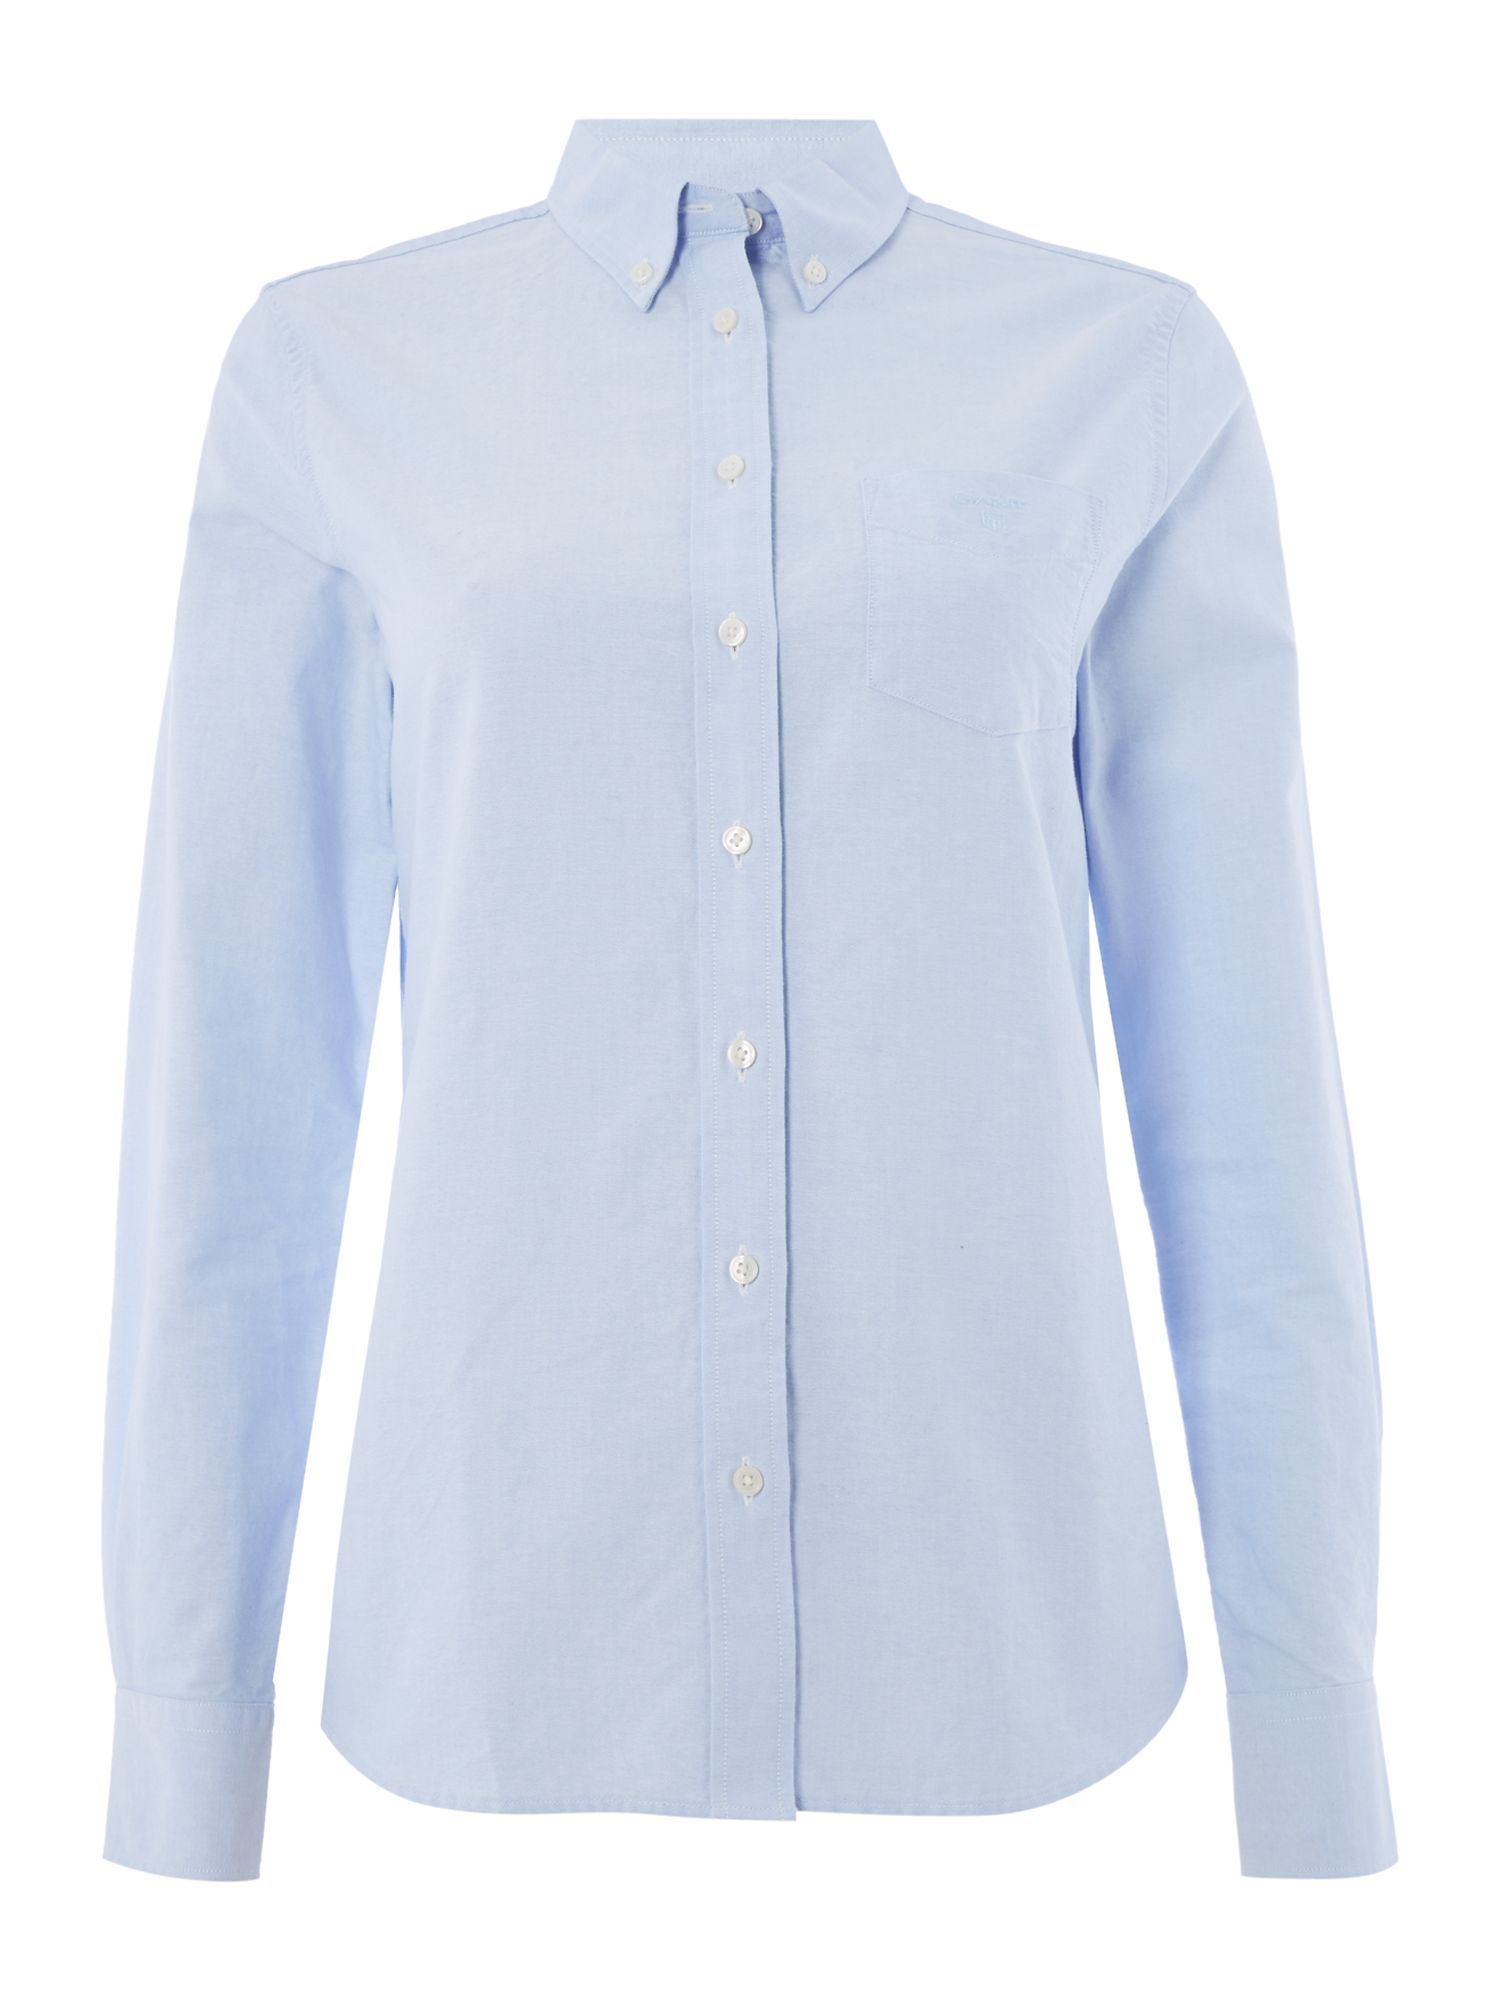 Gant The Perfect Oxford Shirt, Light Blue